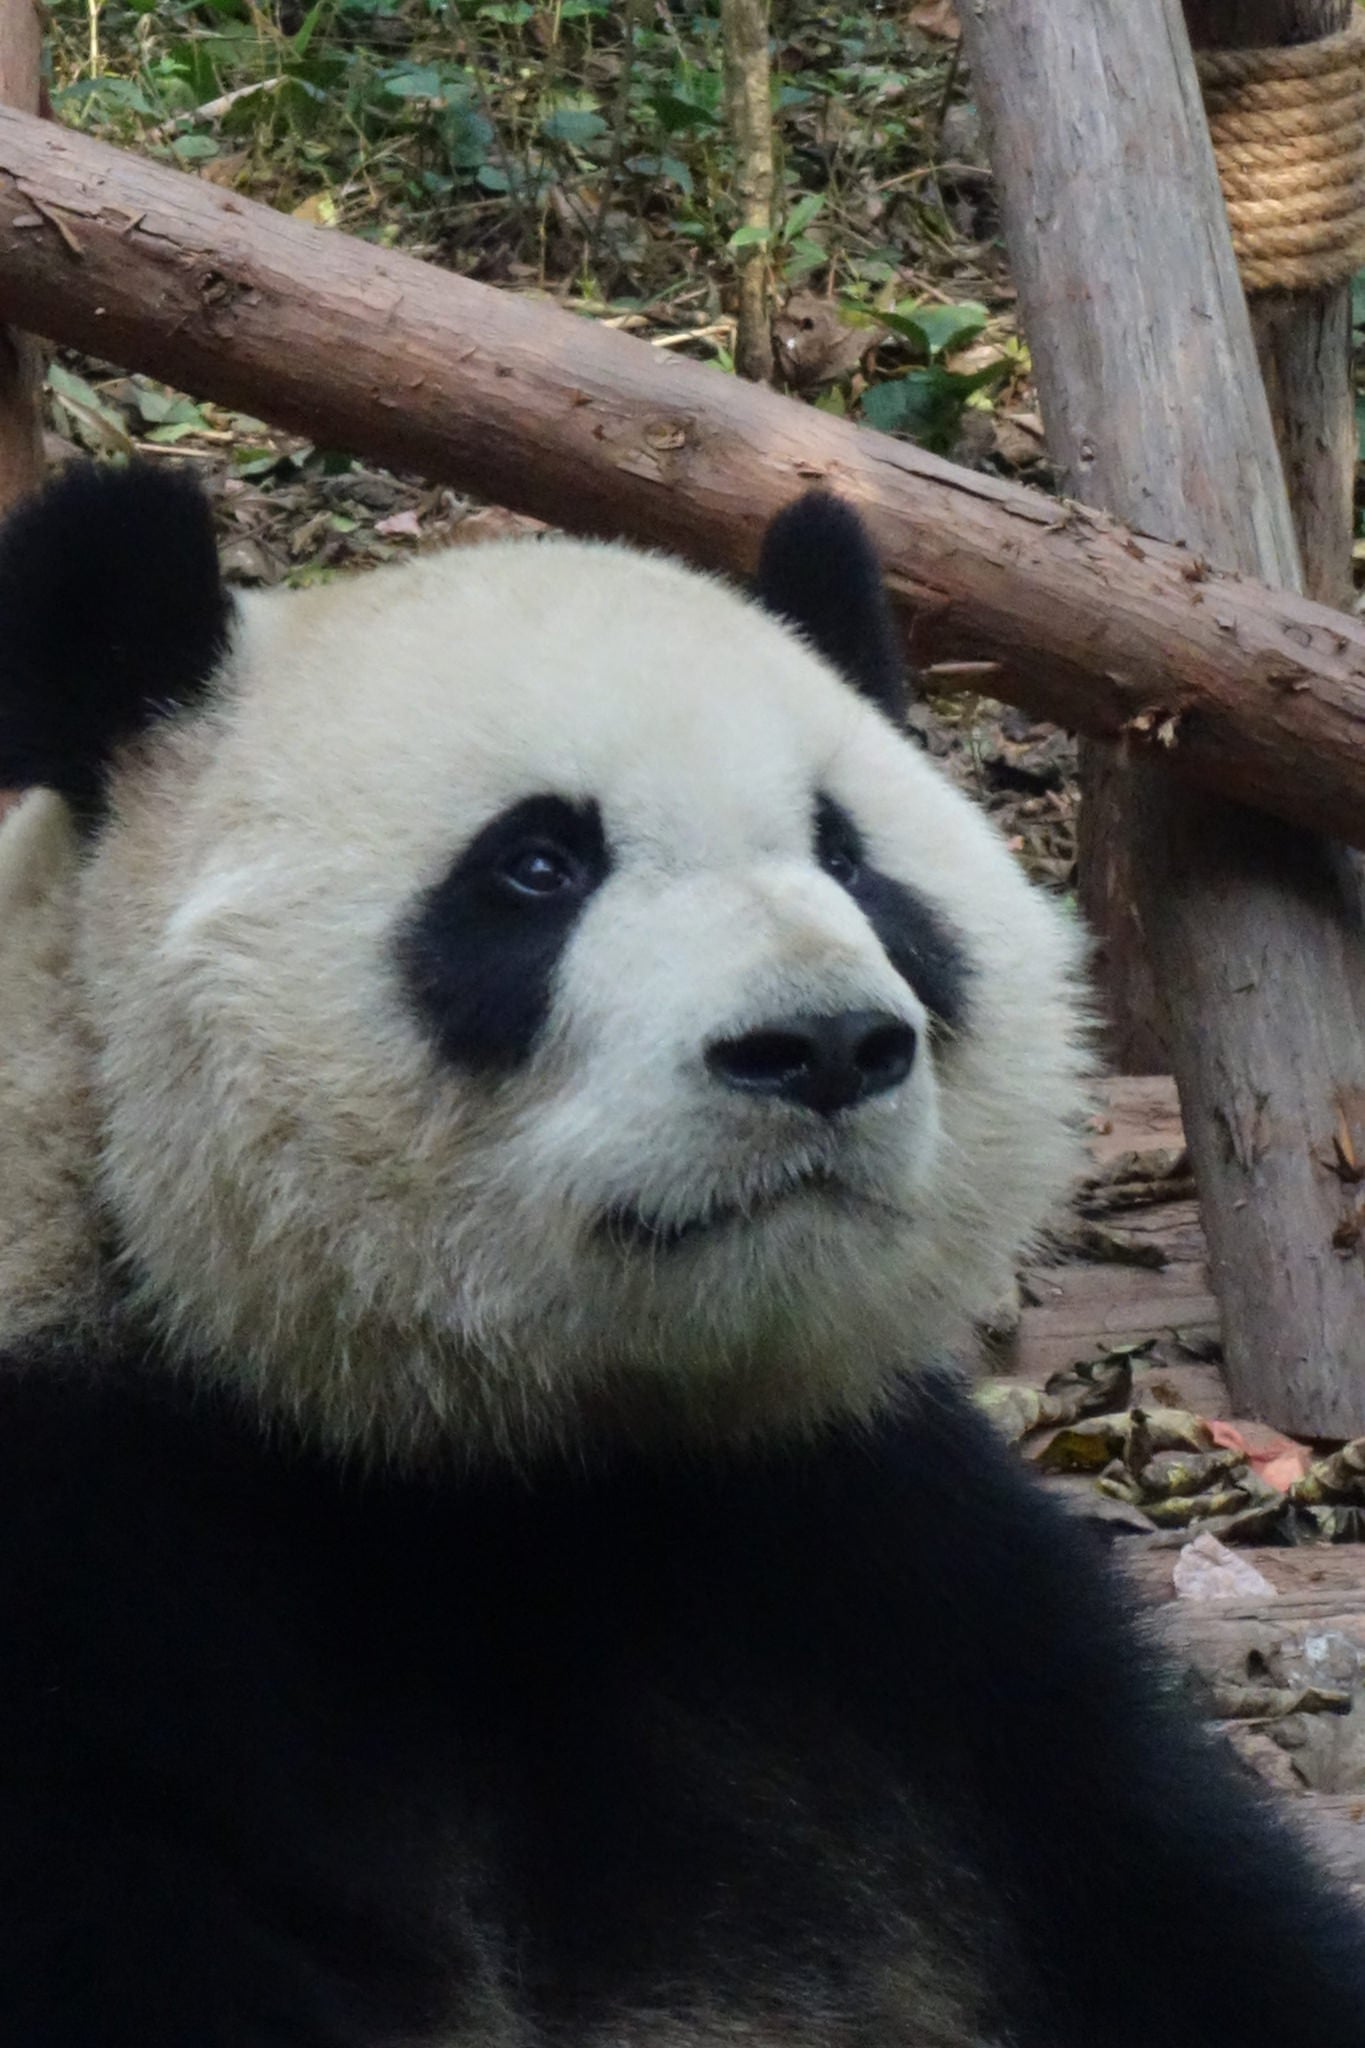 Giant panda / black and white cat-foot (14 images)